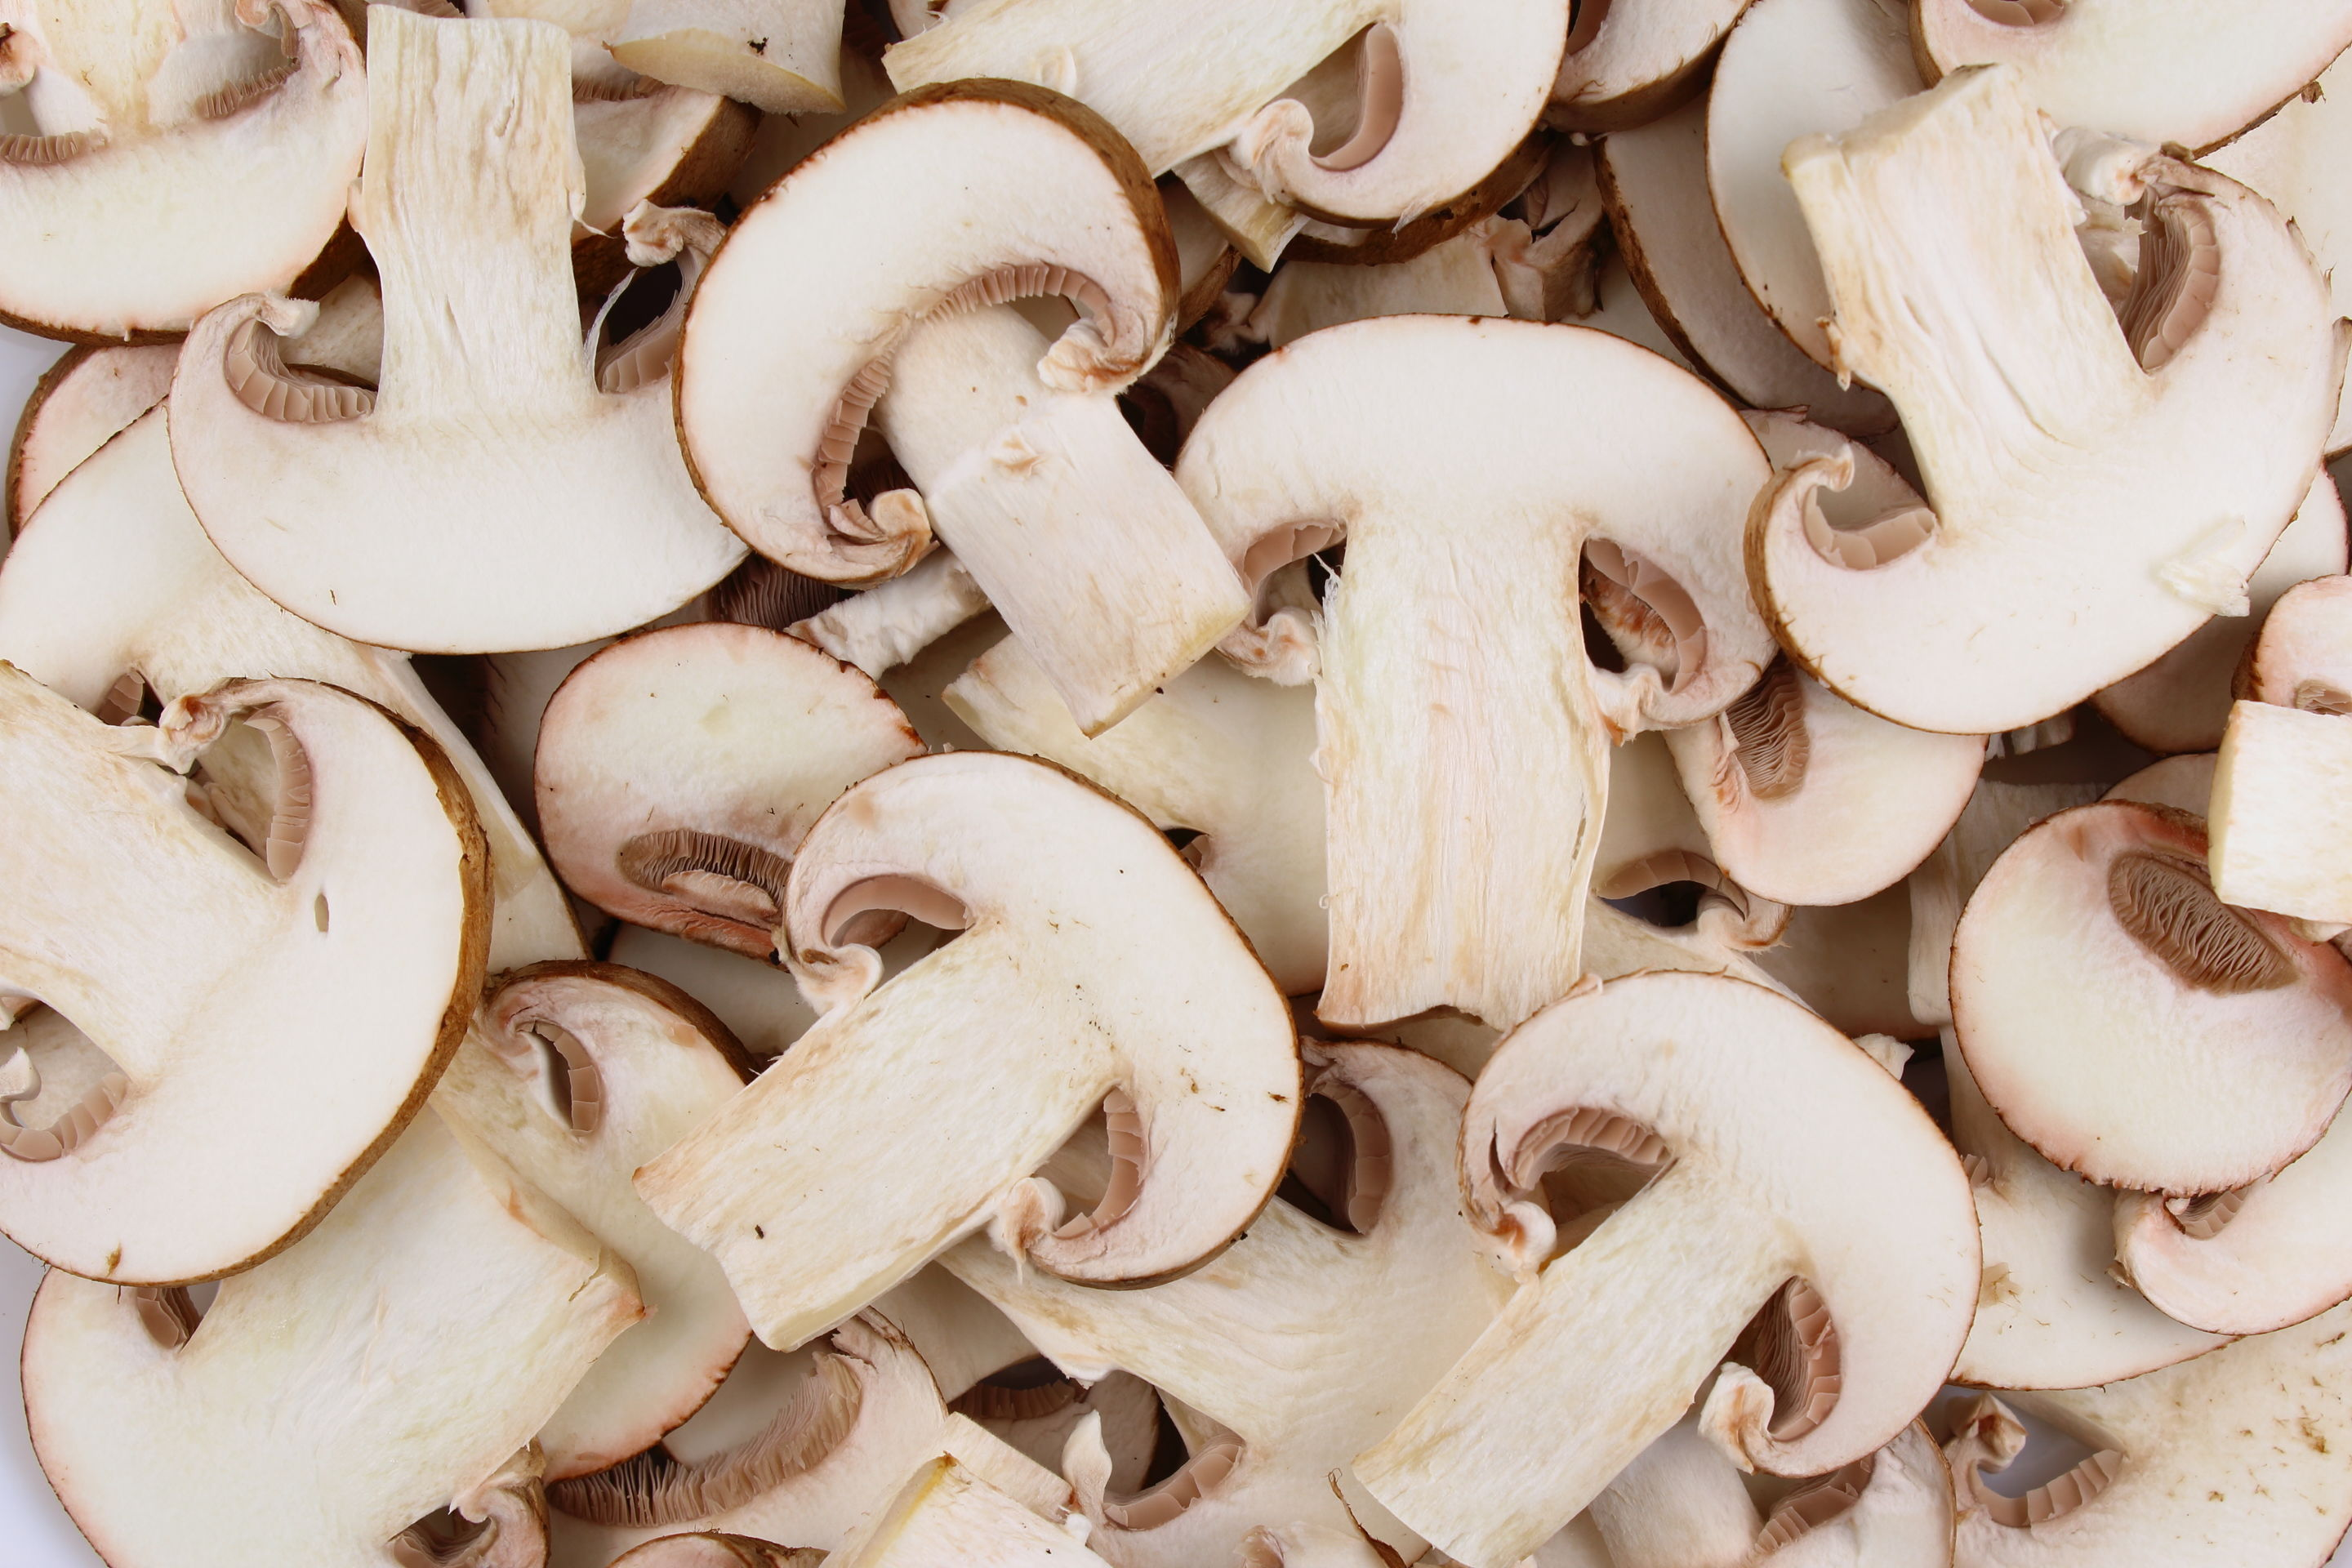 Paris mushrooms, thickly sliced